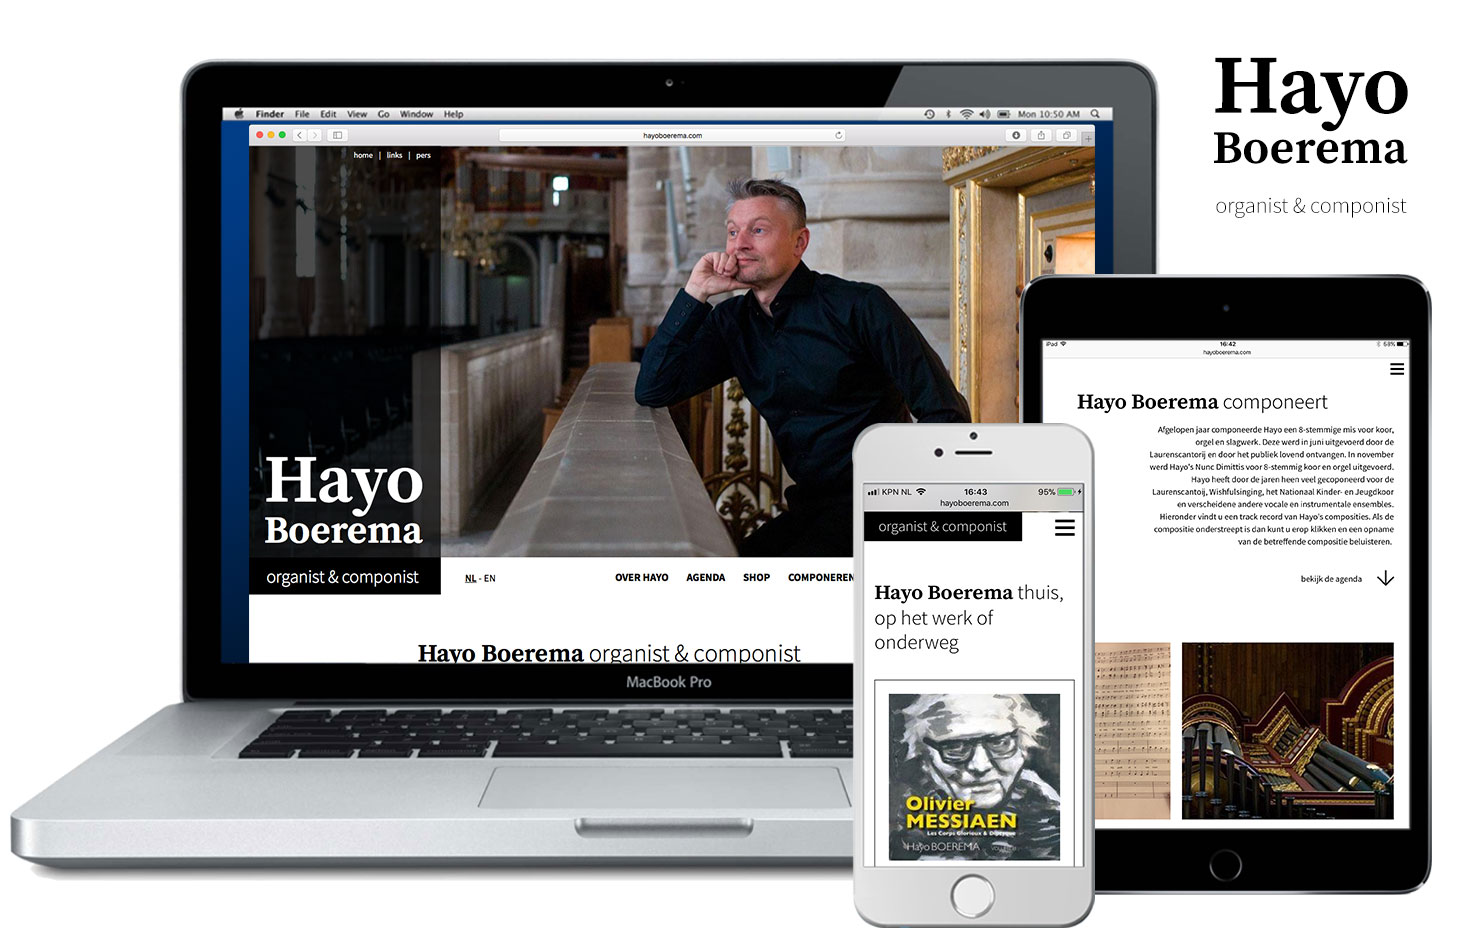 Hayo-boerema-website-macbook-ipad-iphone